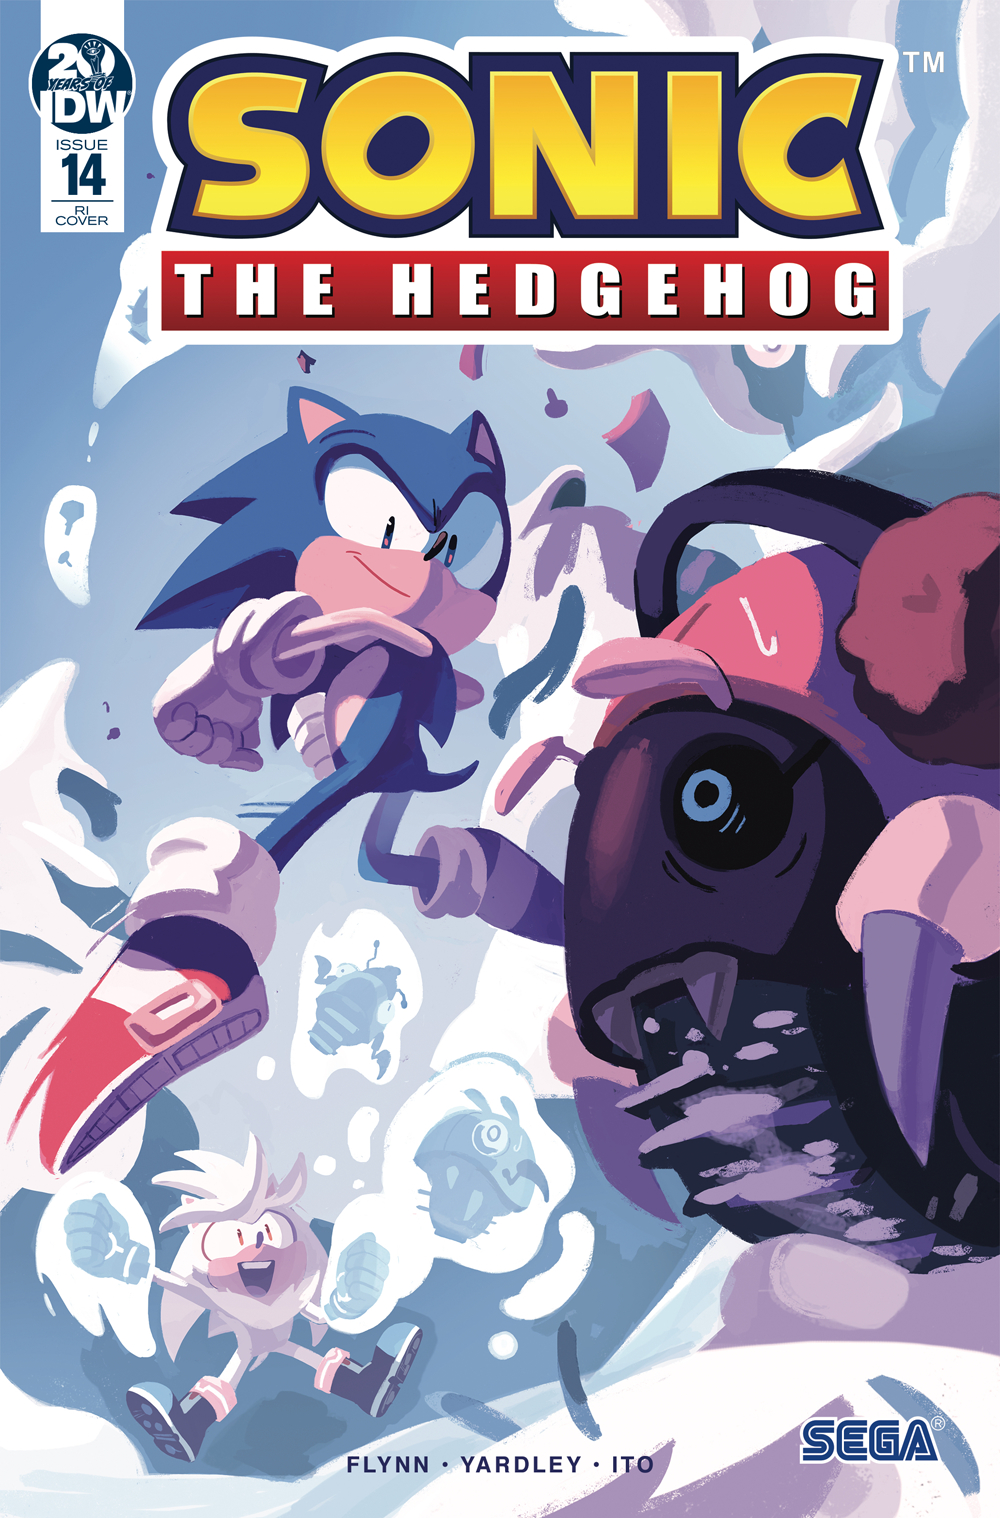 SONIC THE HEDGEHOG #14 10 COPY INCV FOURDRAINE